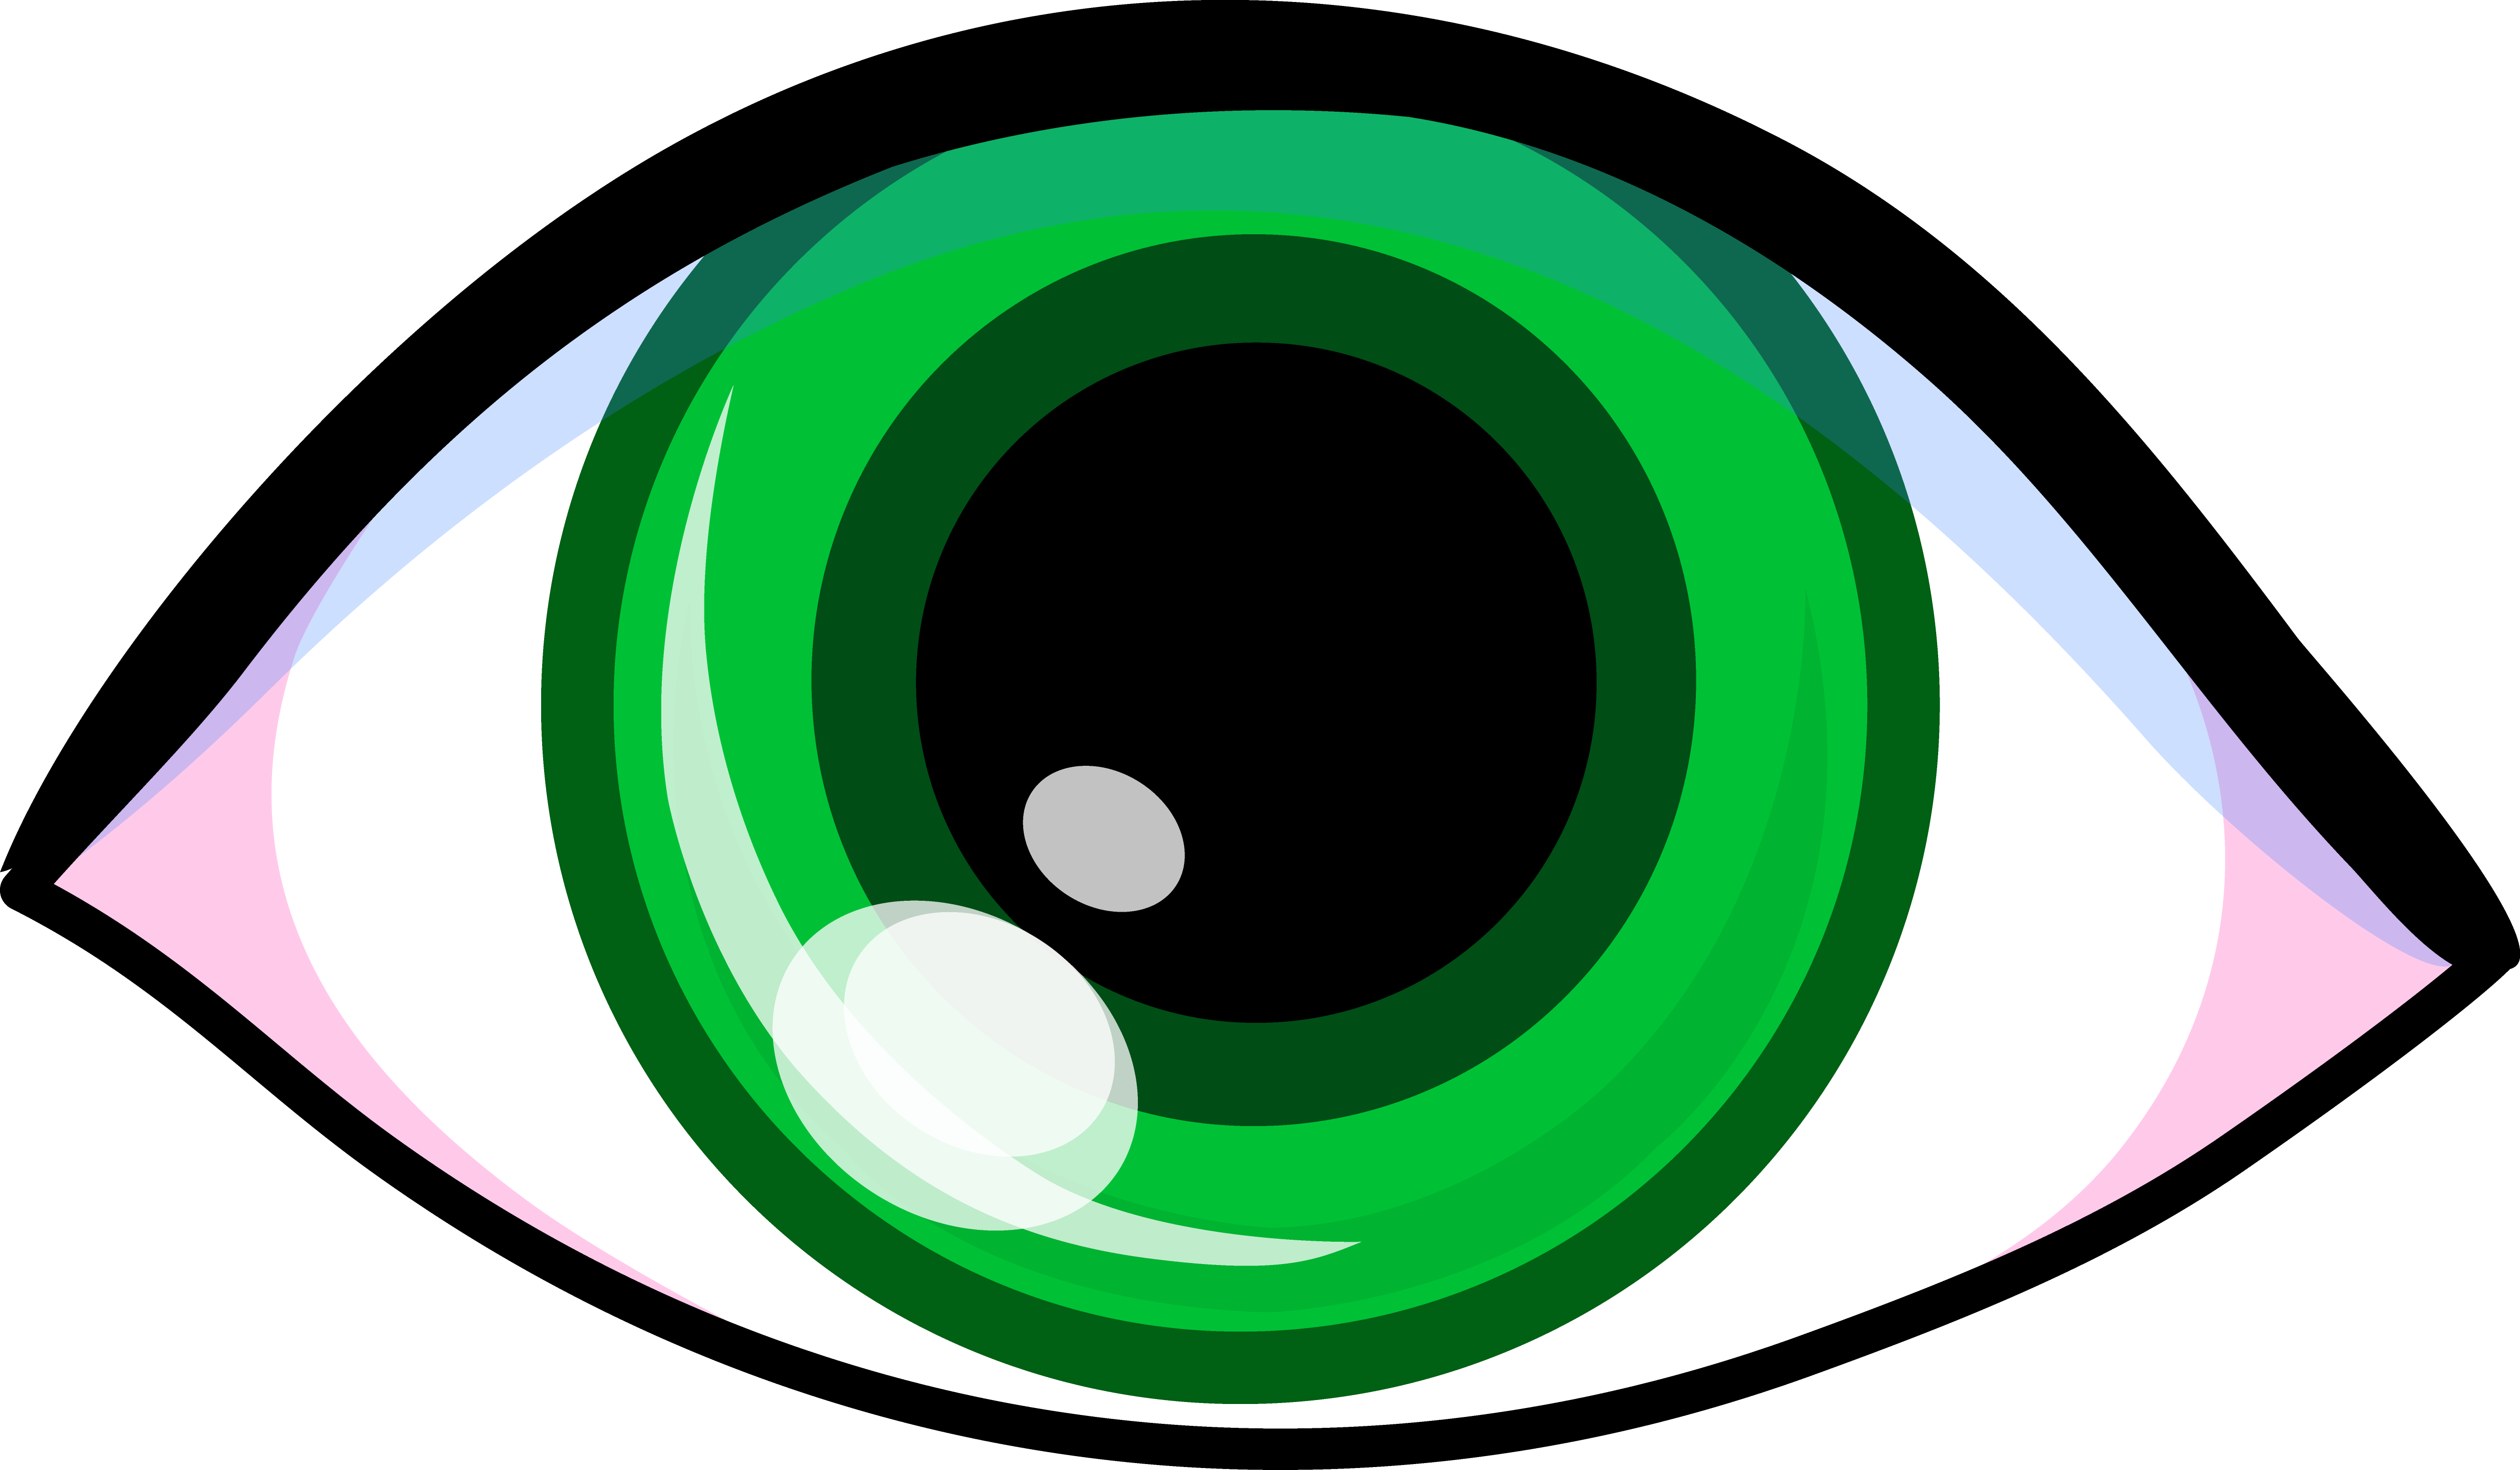 5076x2962 Green Eye Design